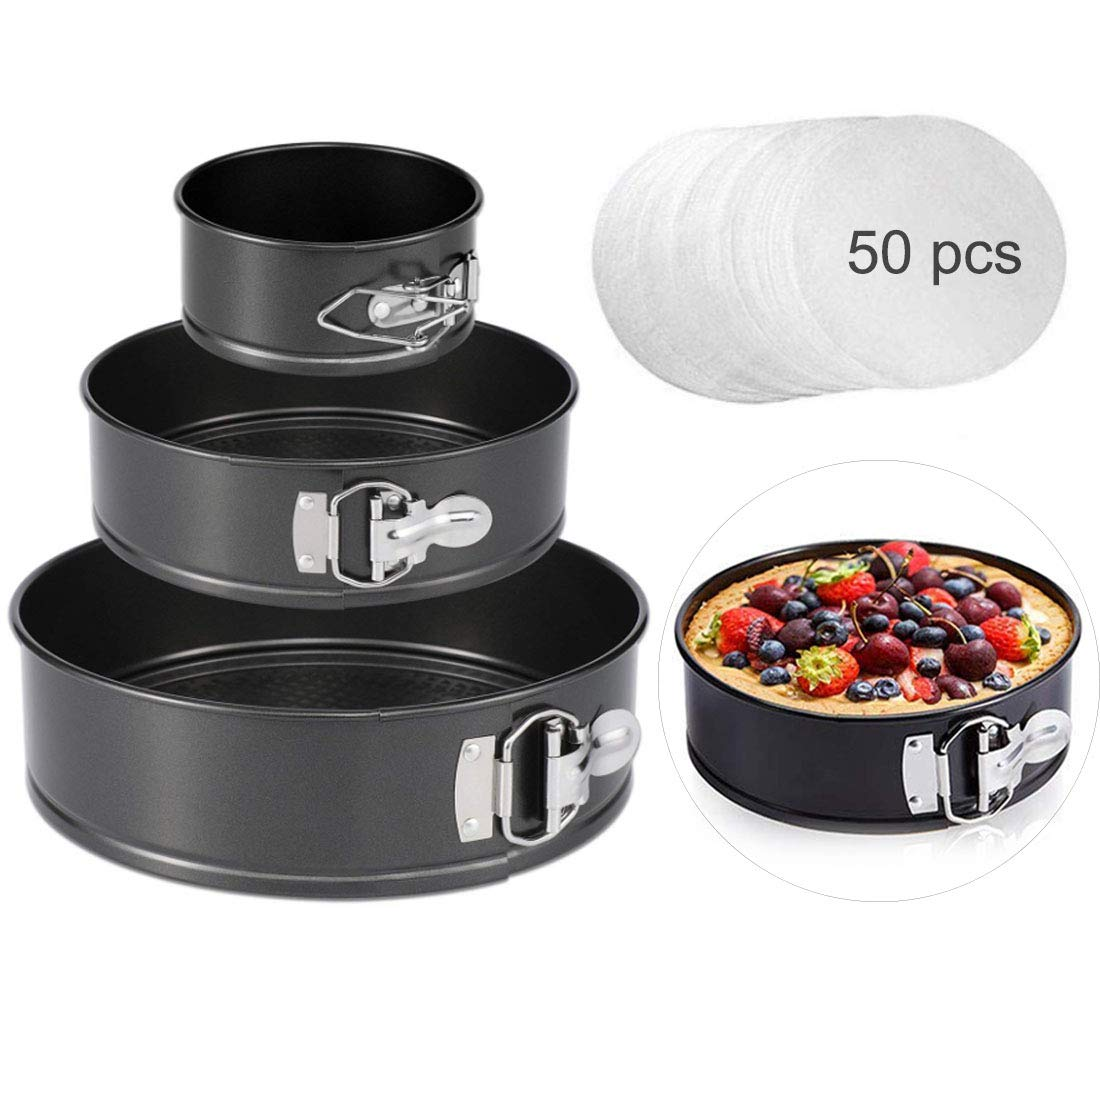 Springform Cake Pan set, 4''/7''/9'' Non-stick Cheesecake Pan, Leakproof Round Cake Pan,Removable Bottom Quick Release Latch moulds for birthday cake,3 PCS,Gift free 50 Pcs Cake Paper